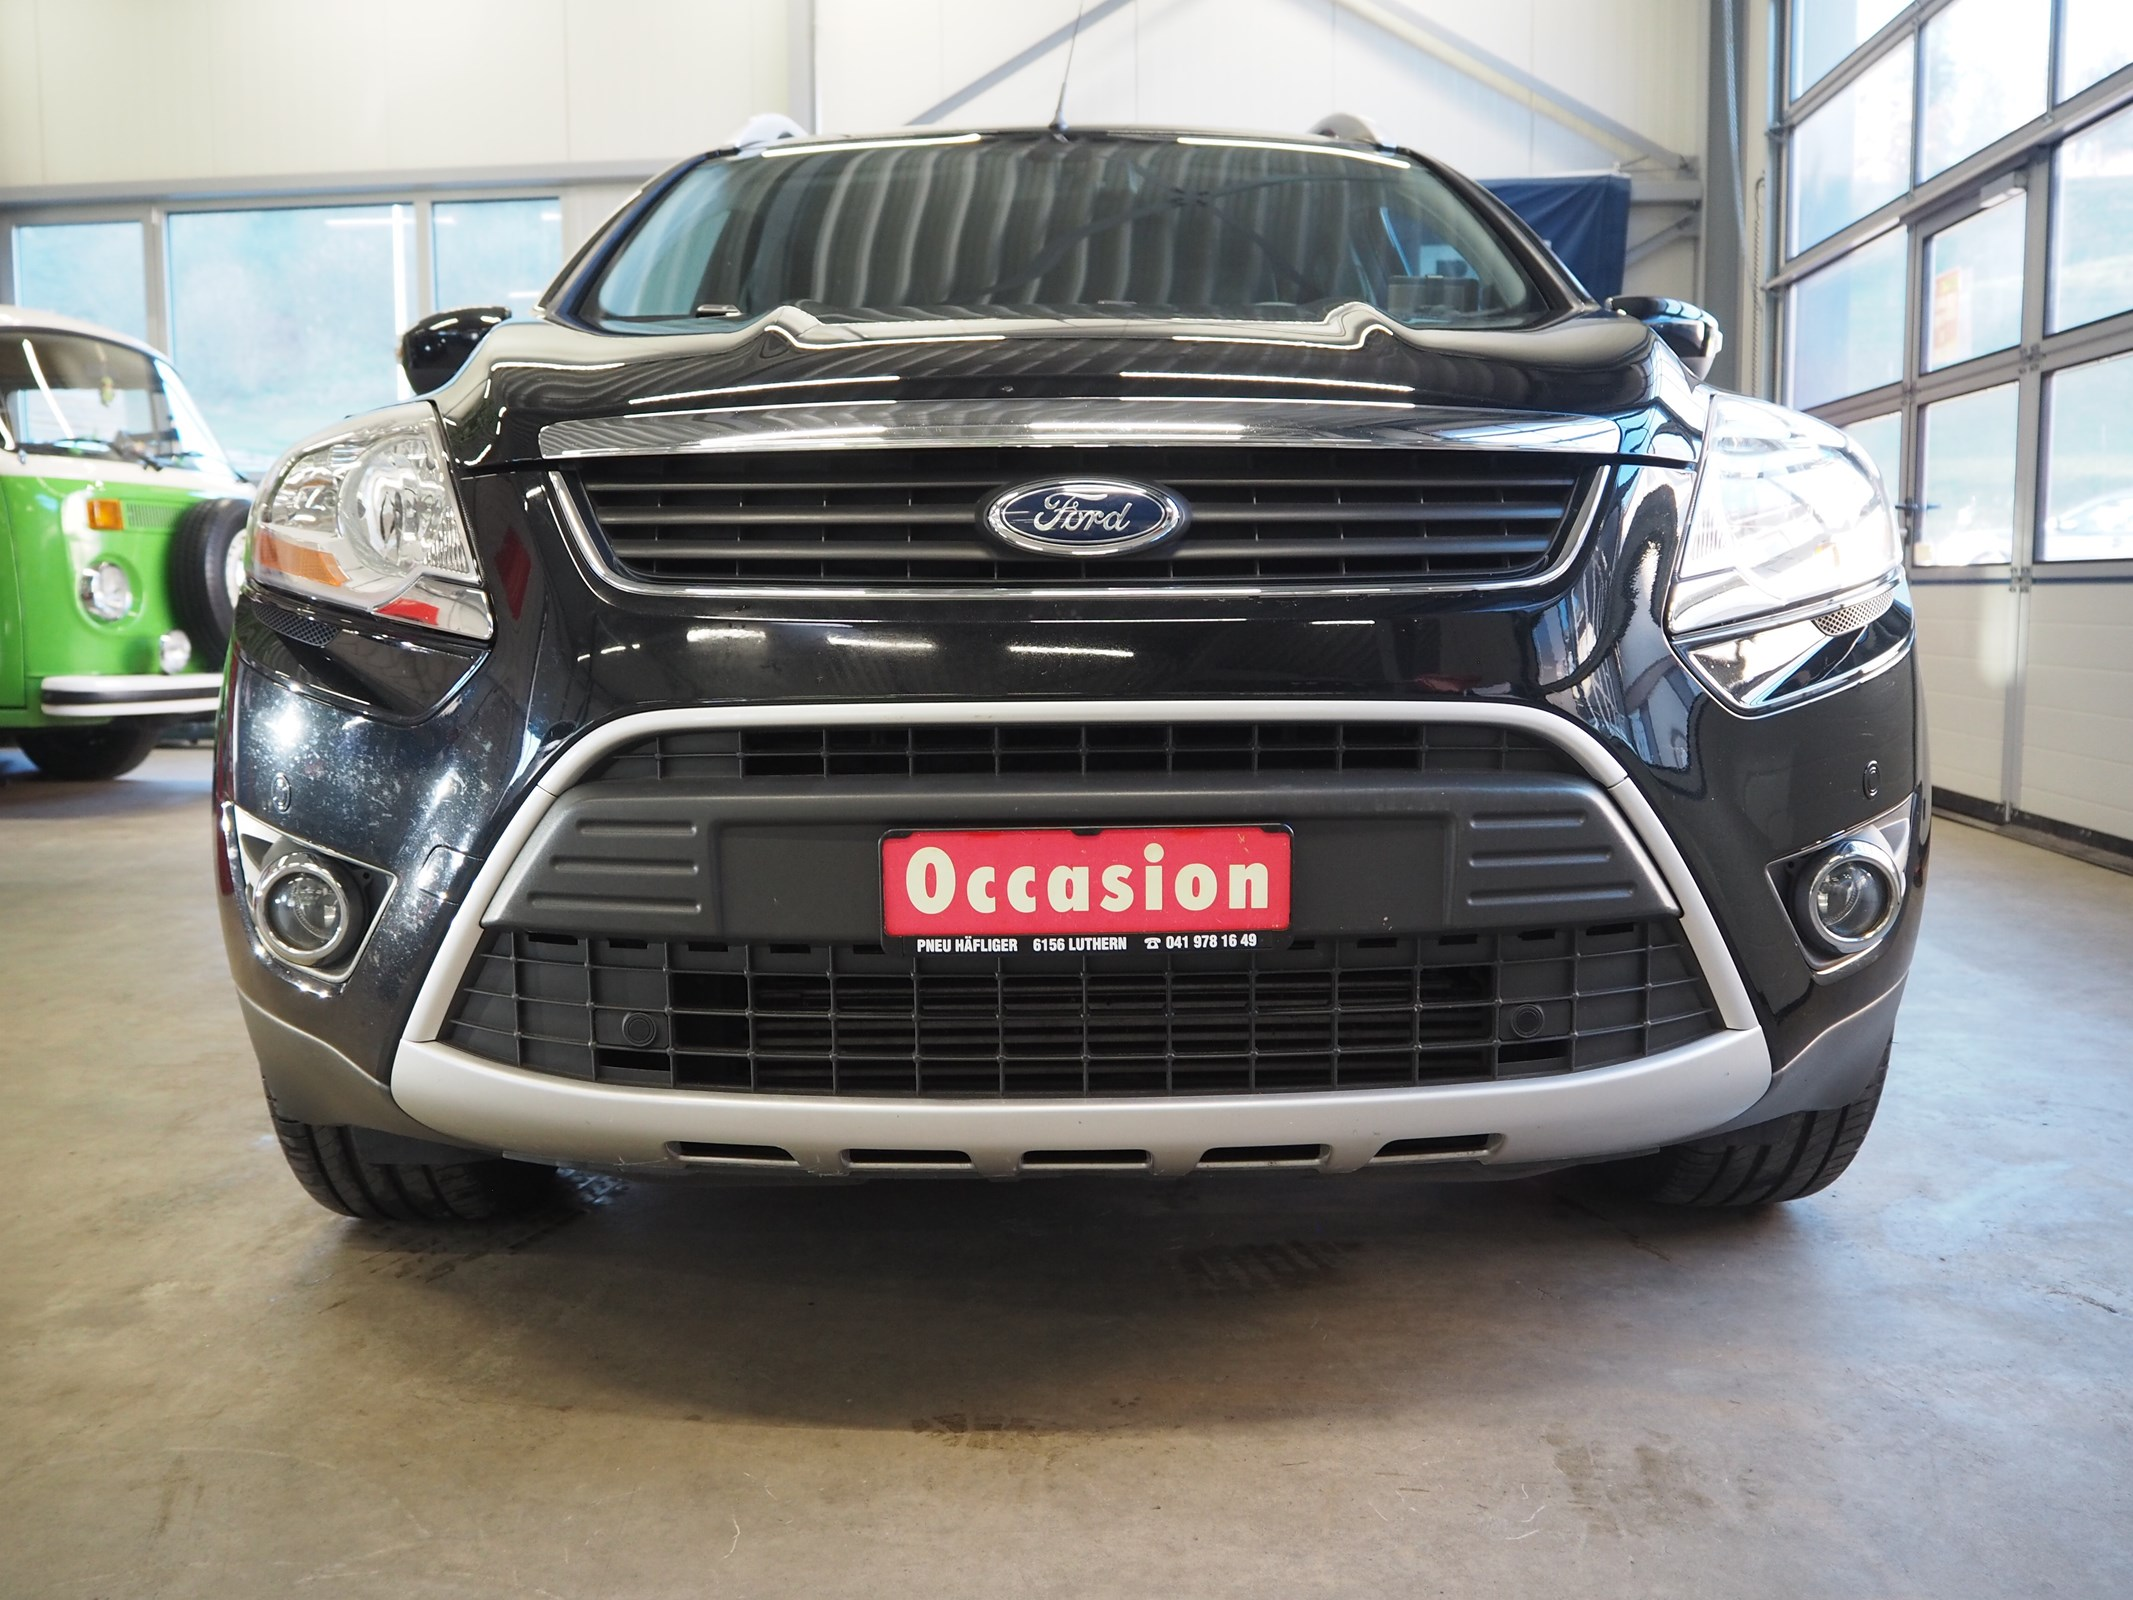 suv Ford Kuga 2.0 TDCi Carving 4WD PowerShift